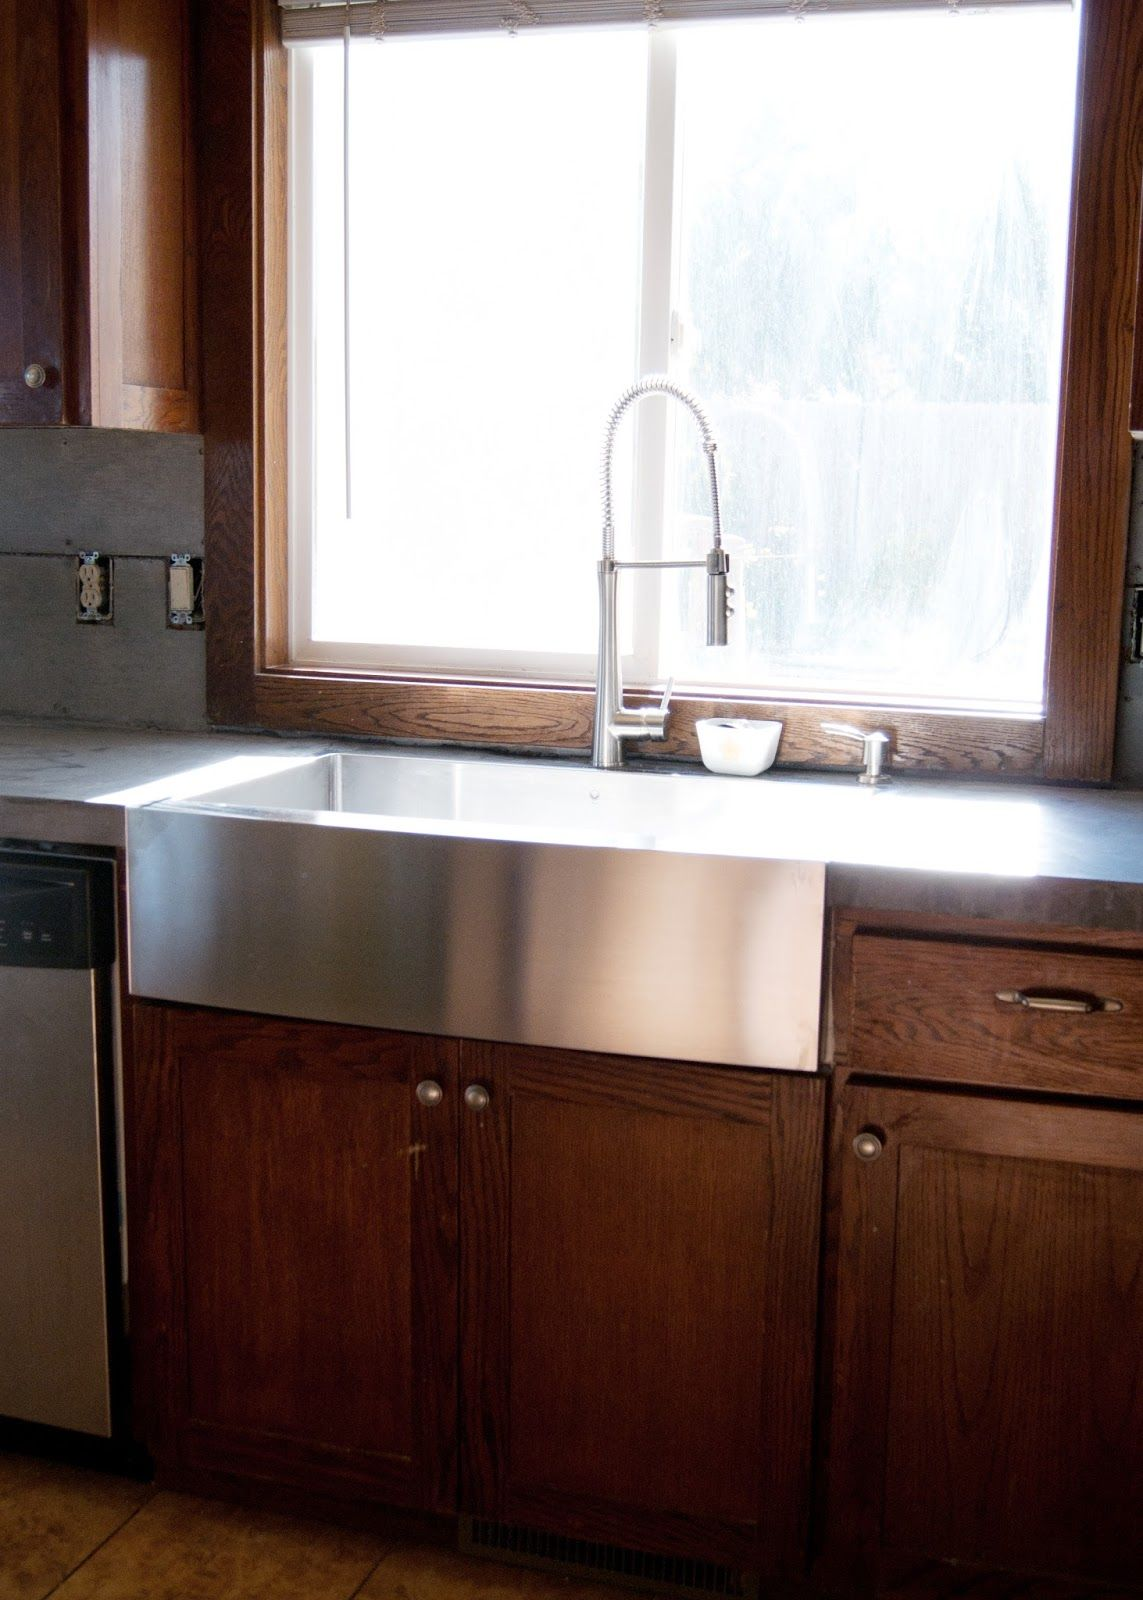 new stainless steel apron front sink + how we installed it in